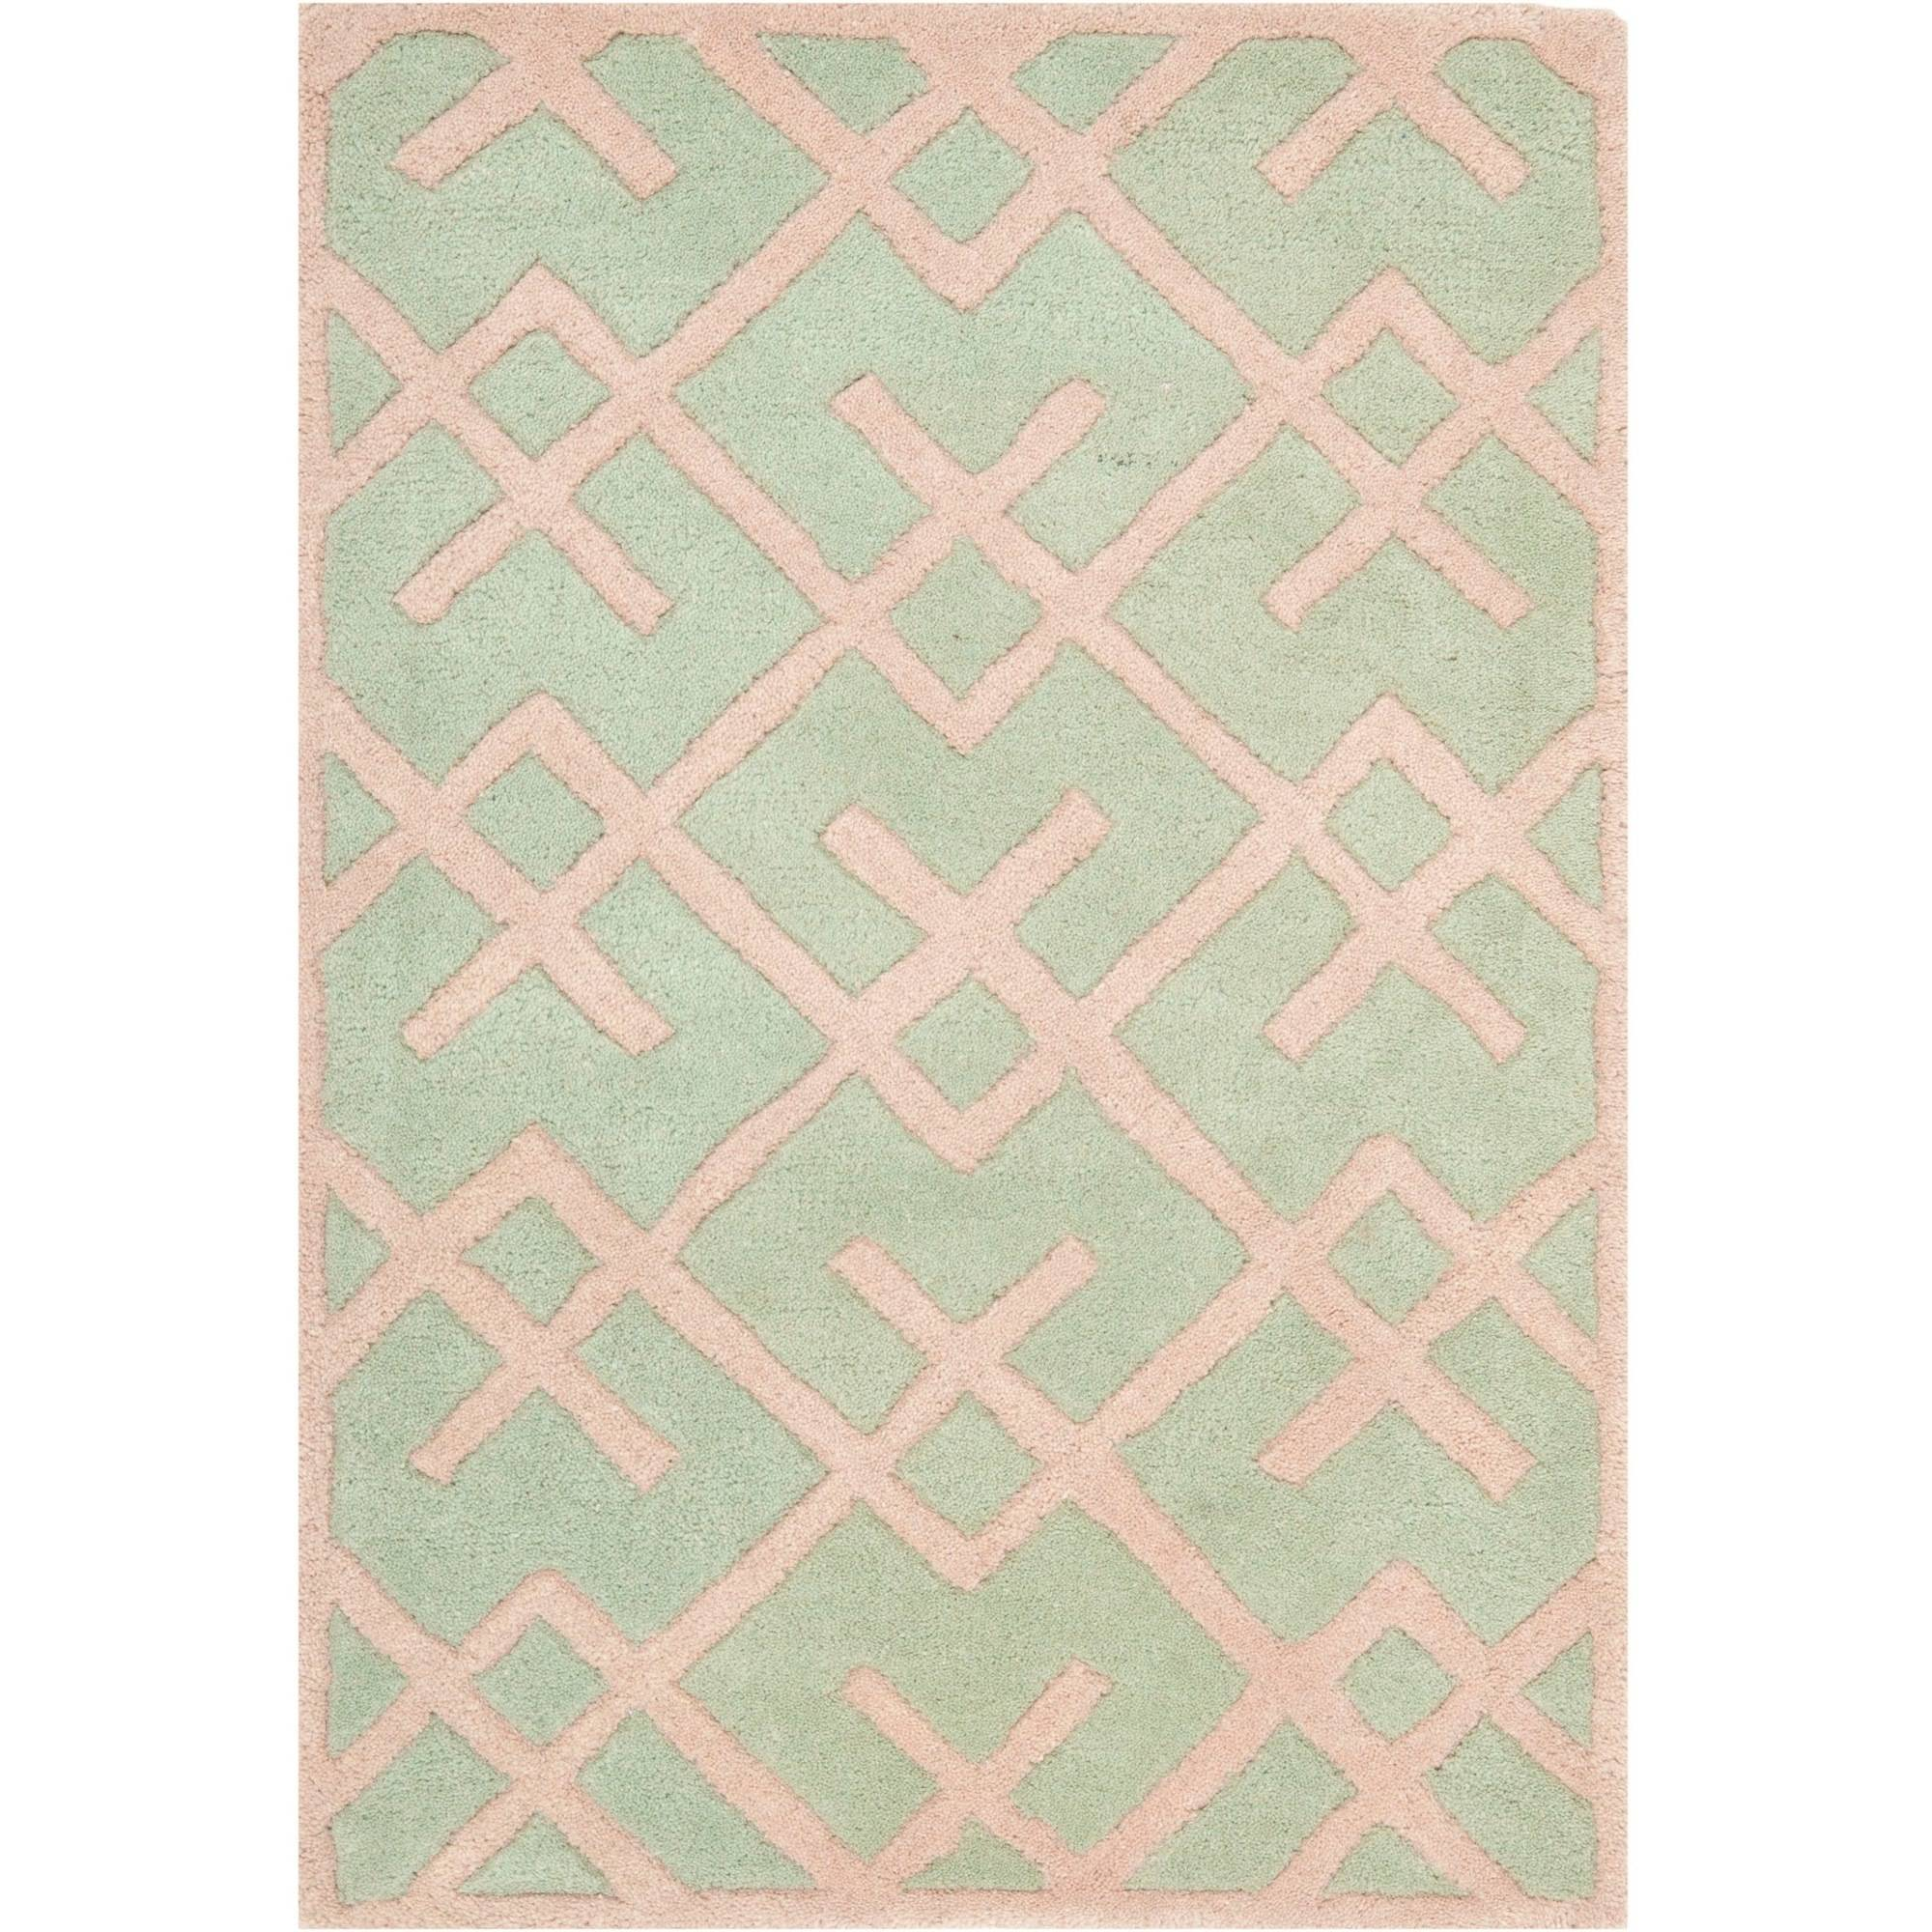 Safavieh Chatham Ian Hand-Tufted Wool Area Rug, Green